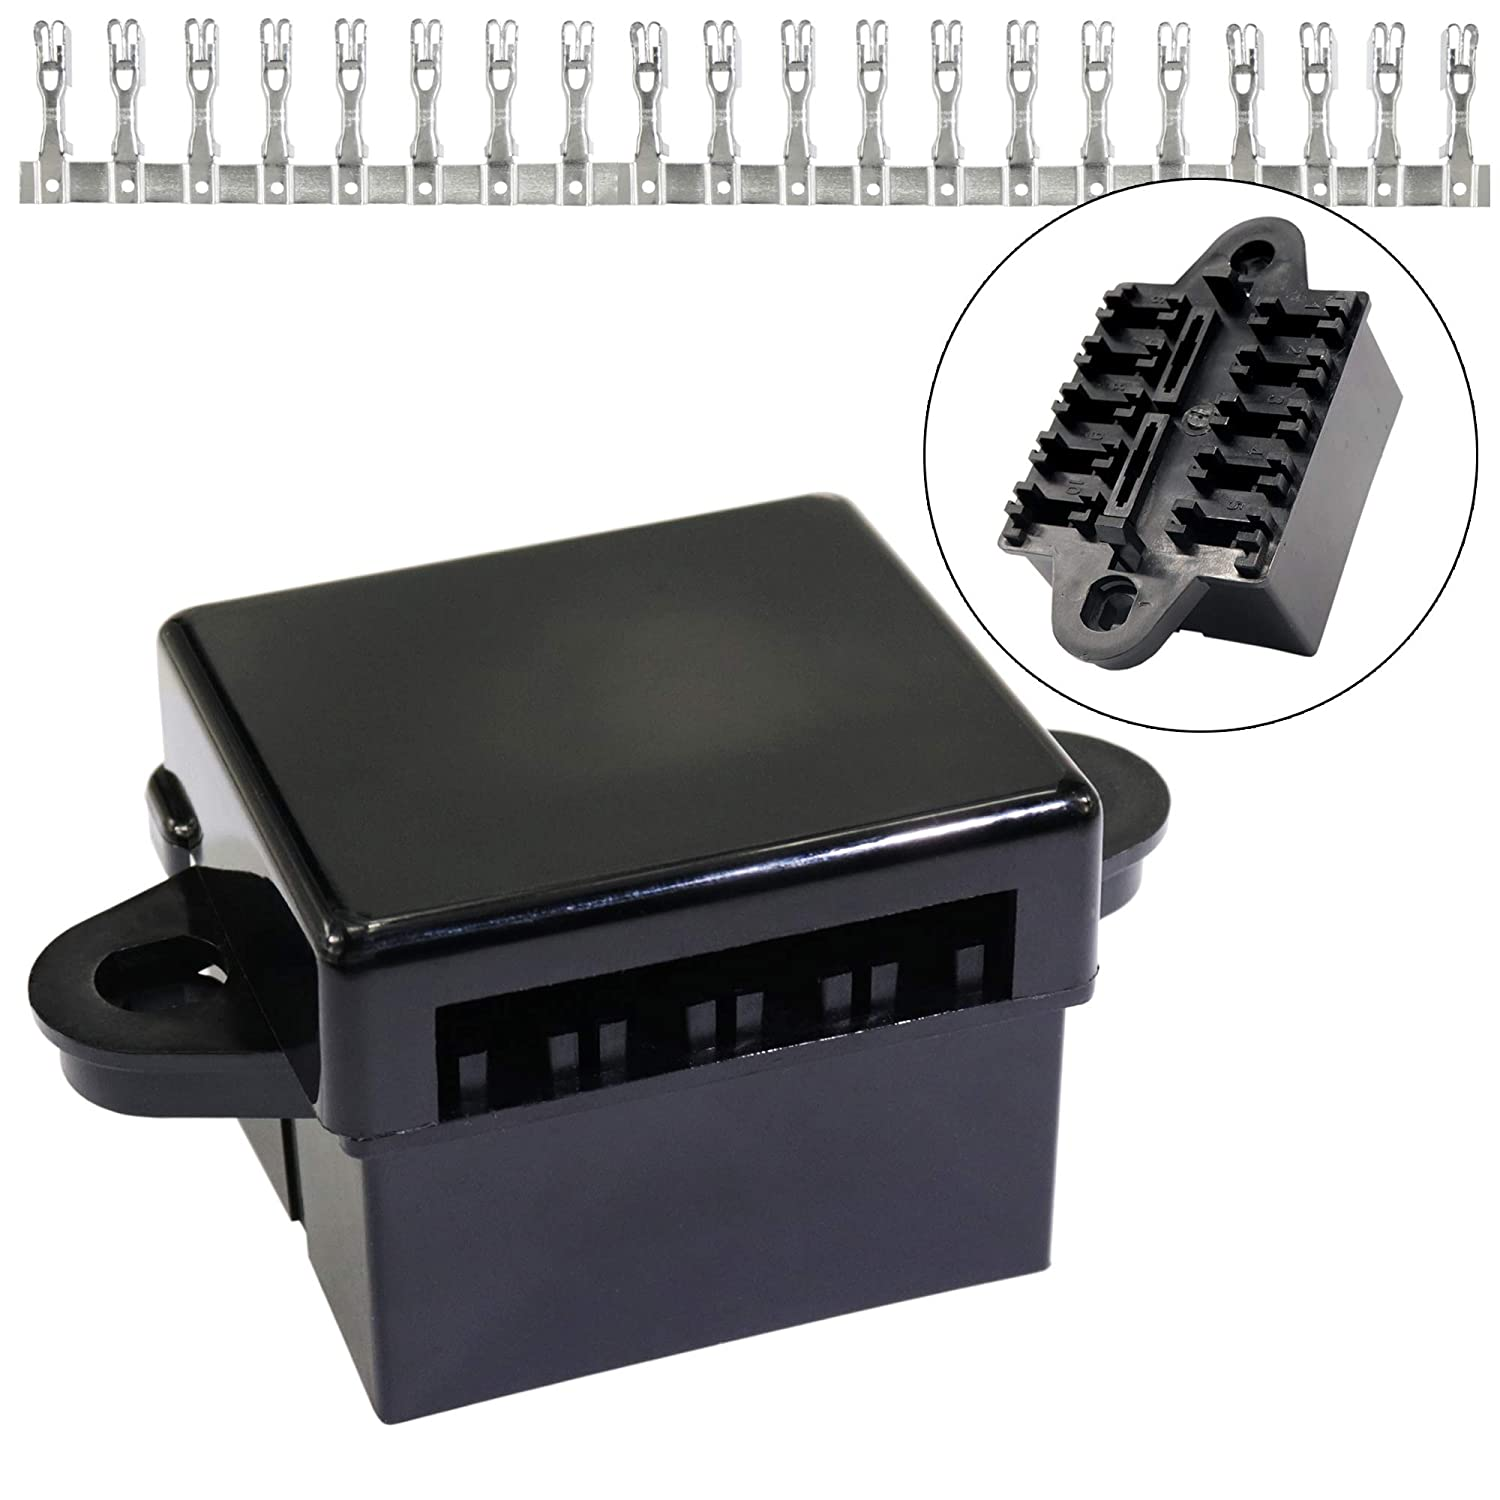 21-Slot Relay fuse Box- relay ATO/ATC fuse holder with relays and fuse, Spade Terminals for Automotive trailer and Marine Use iztor